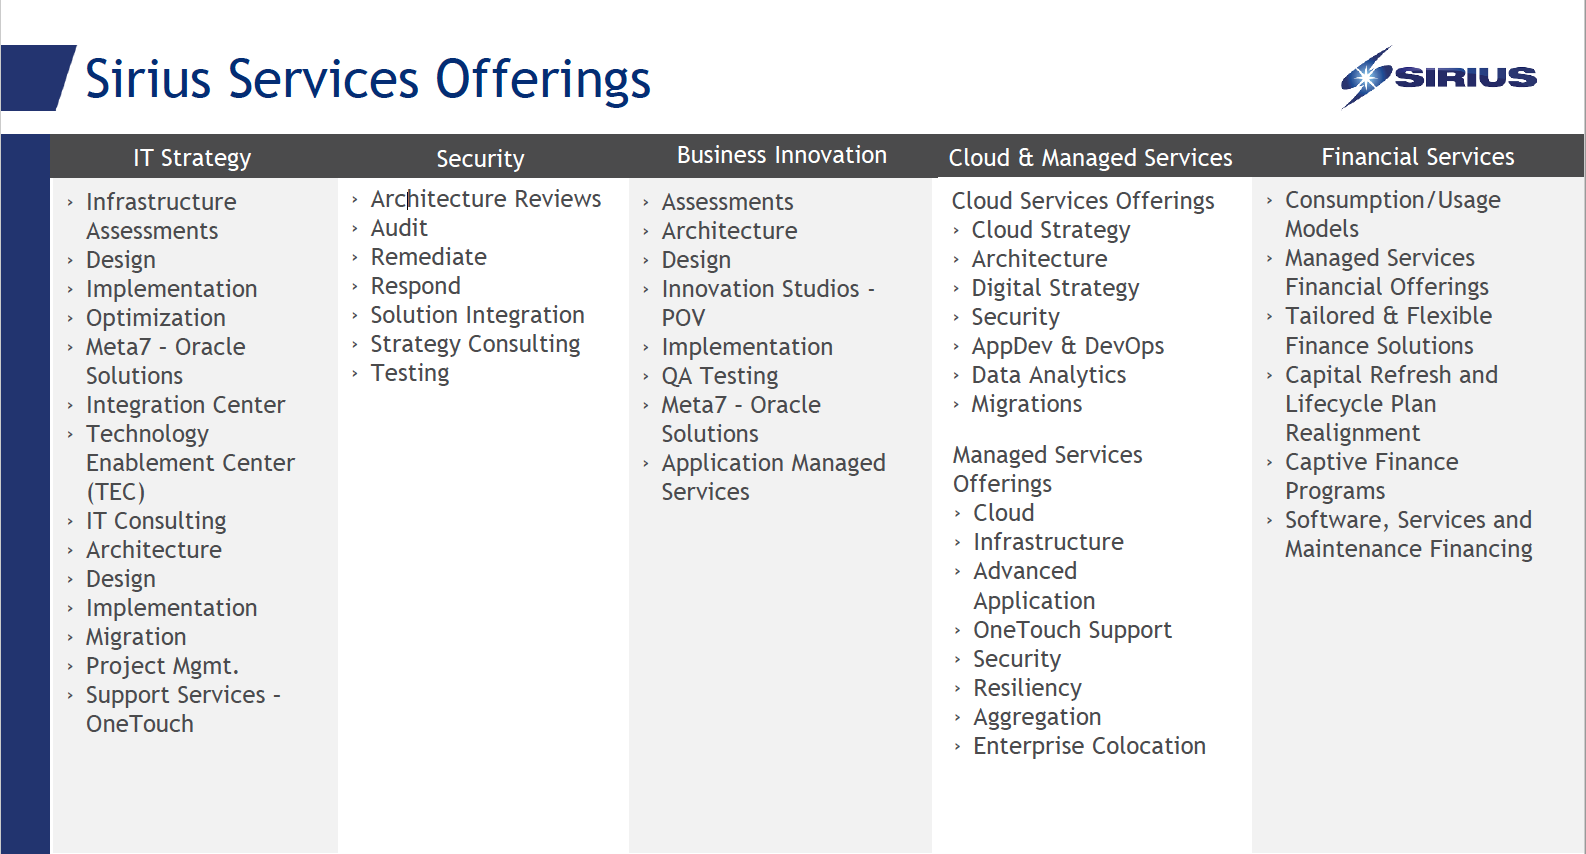 Sirius Services Offerings Overview